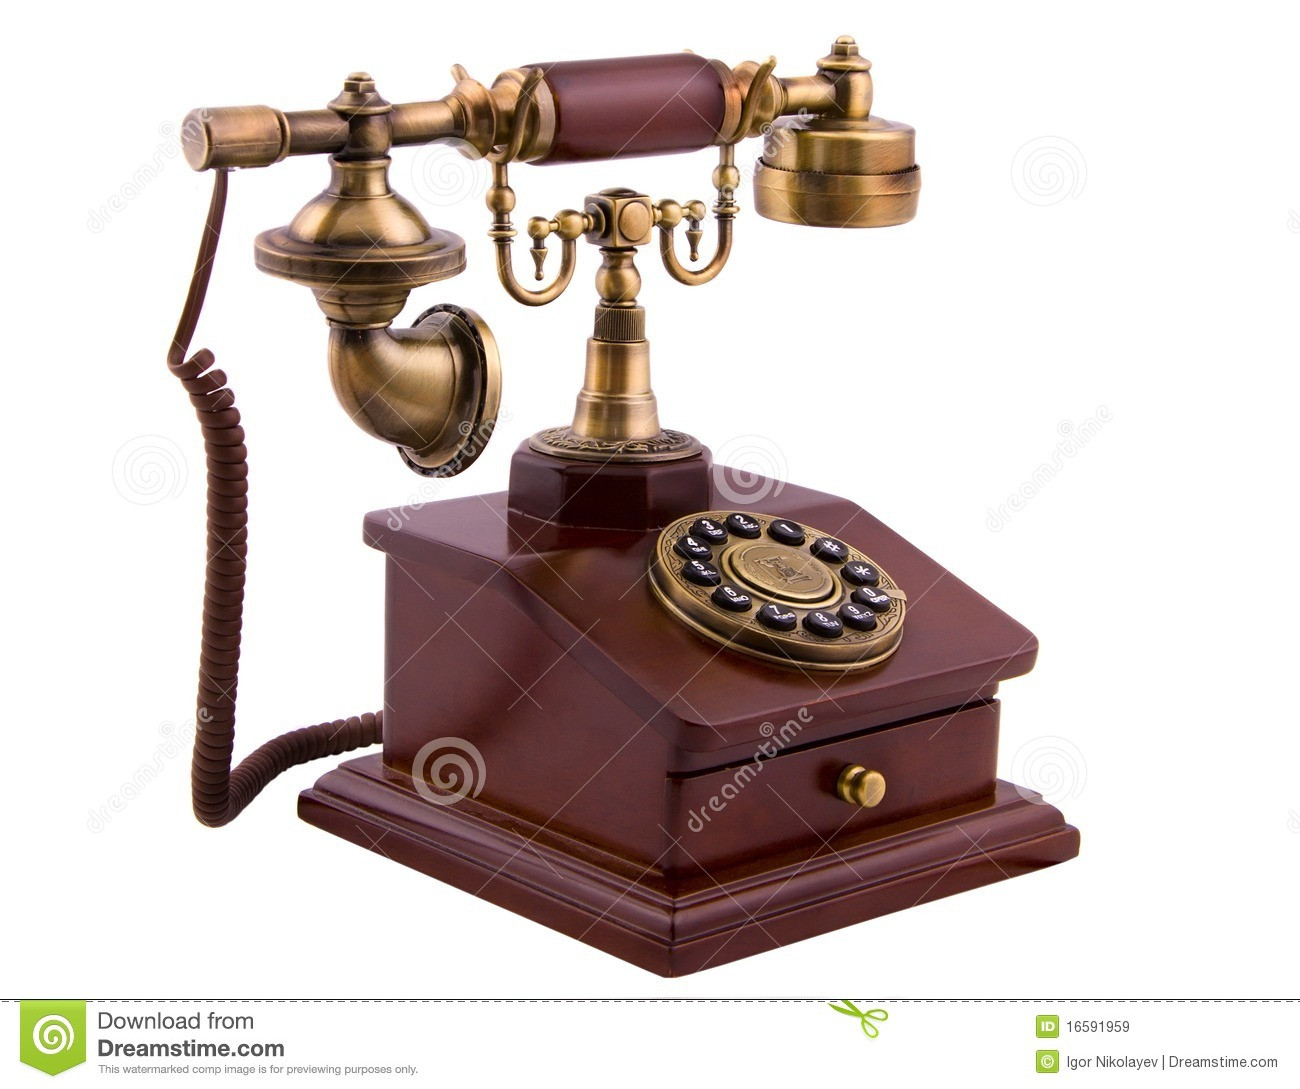 Luxury Old Phone Stock Image Image Of Nostalgic Contact Rare Old Time Phone Of Great 44 Models Old Time Phone